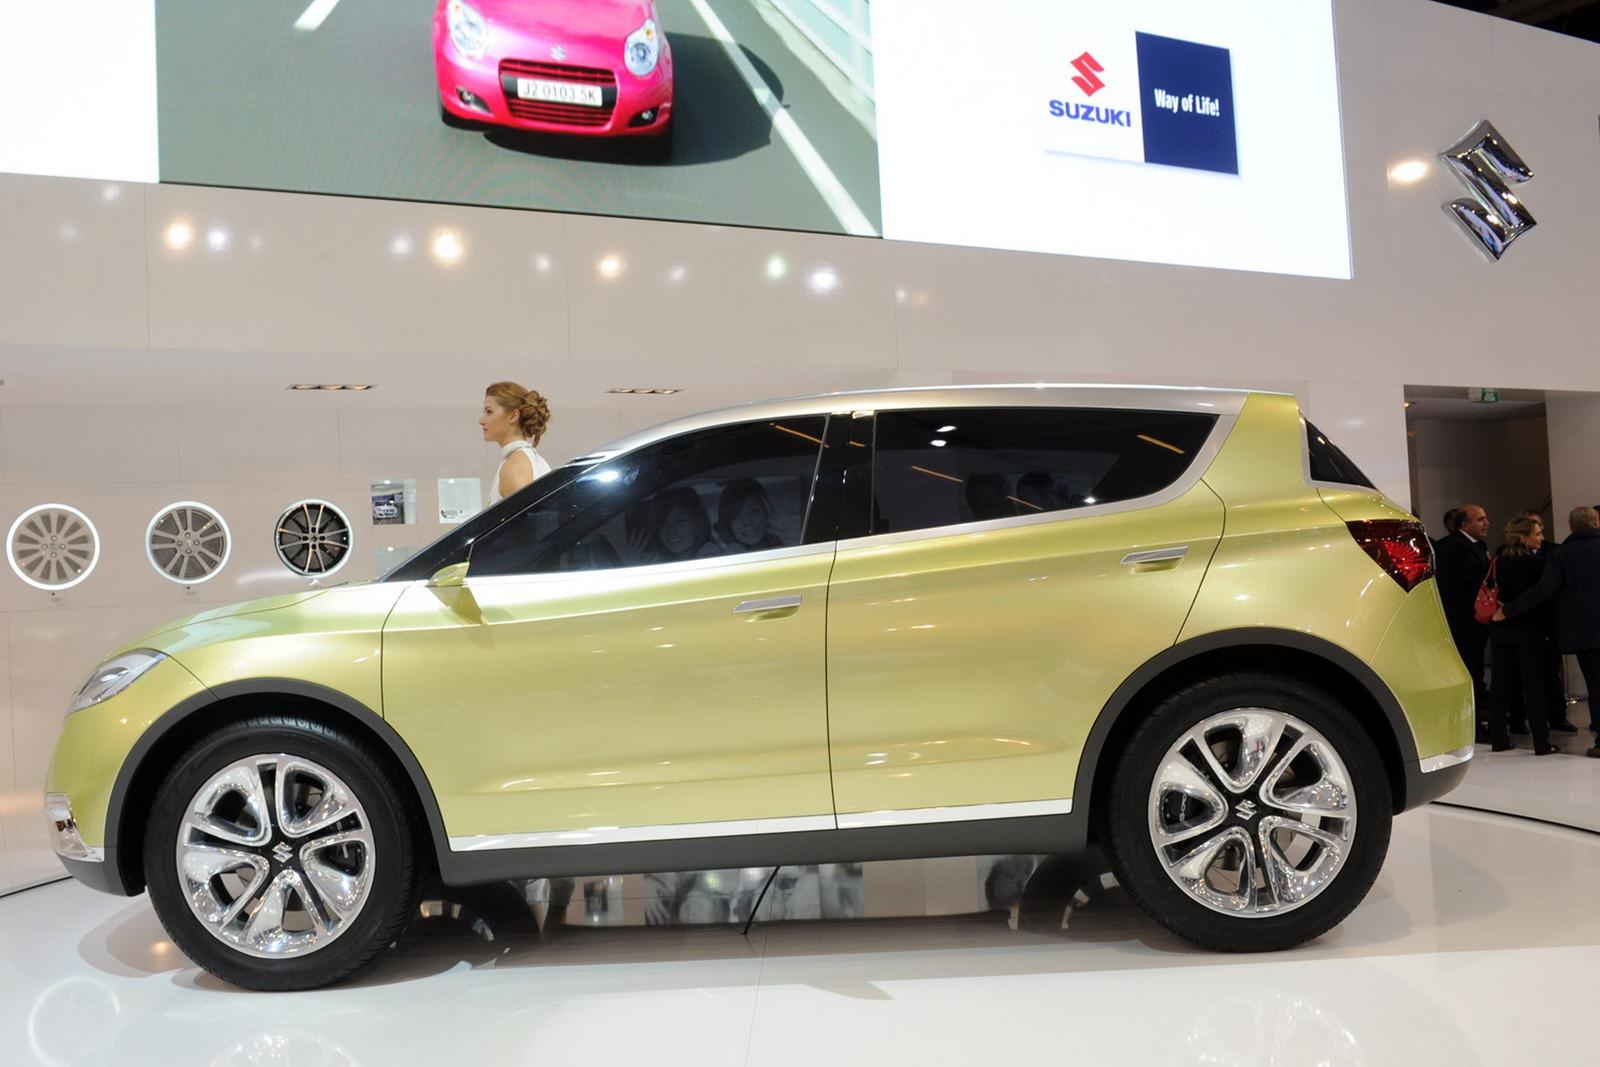 2019 Suzuki S Cross Concept photo - 3